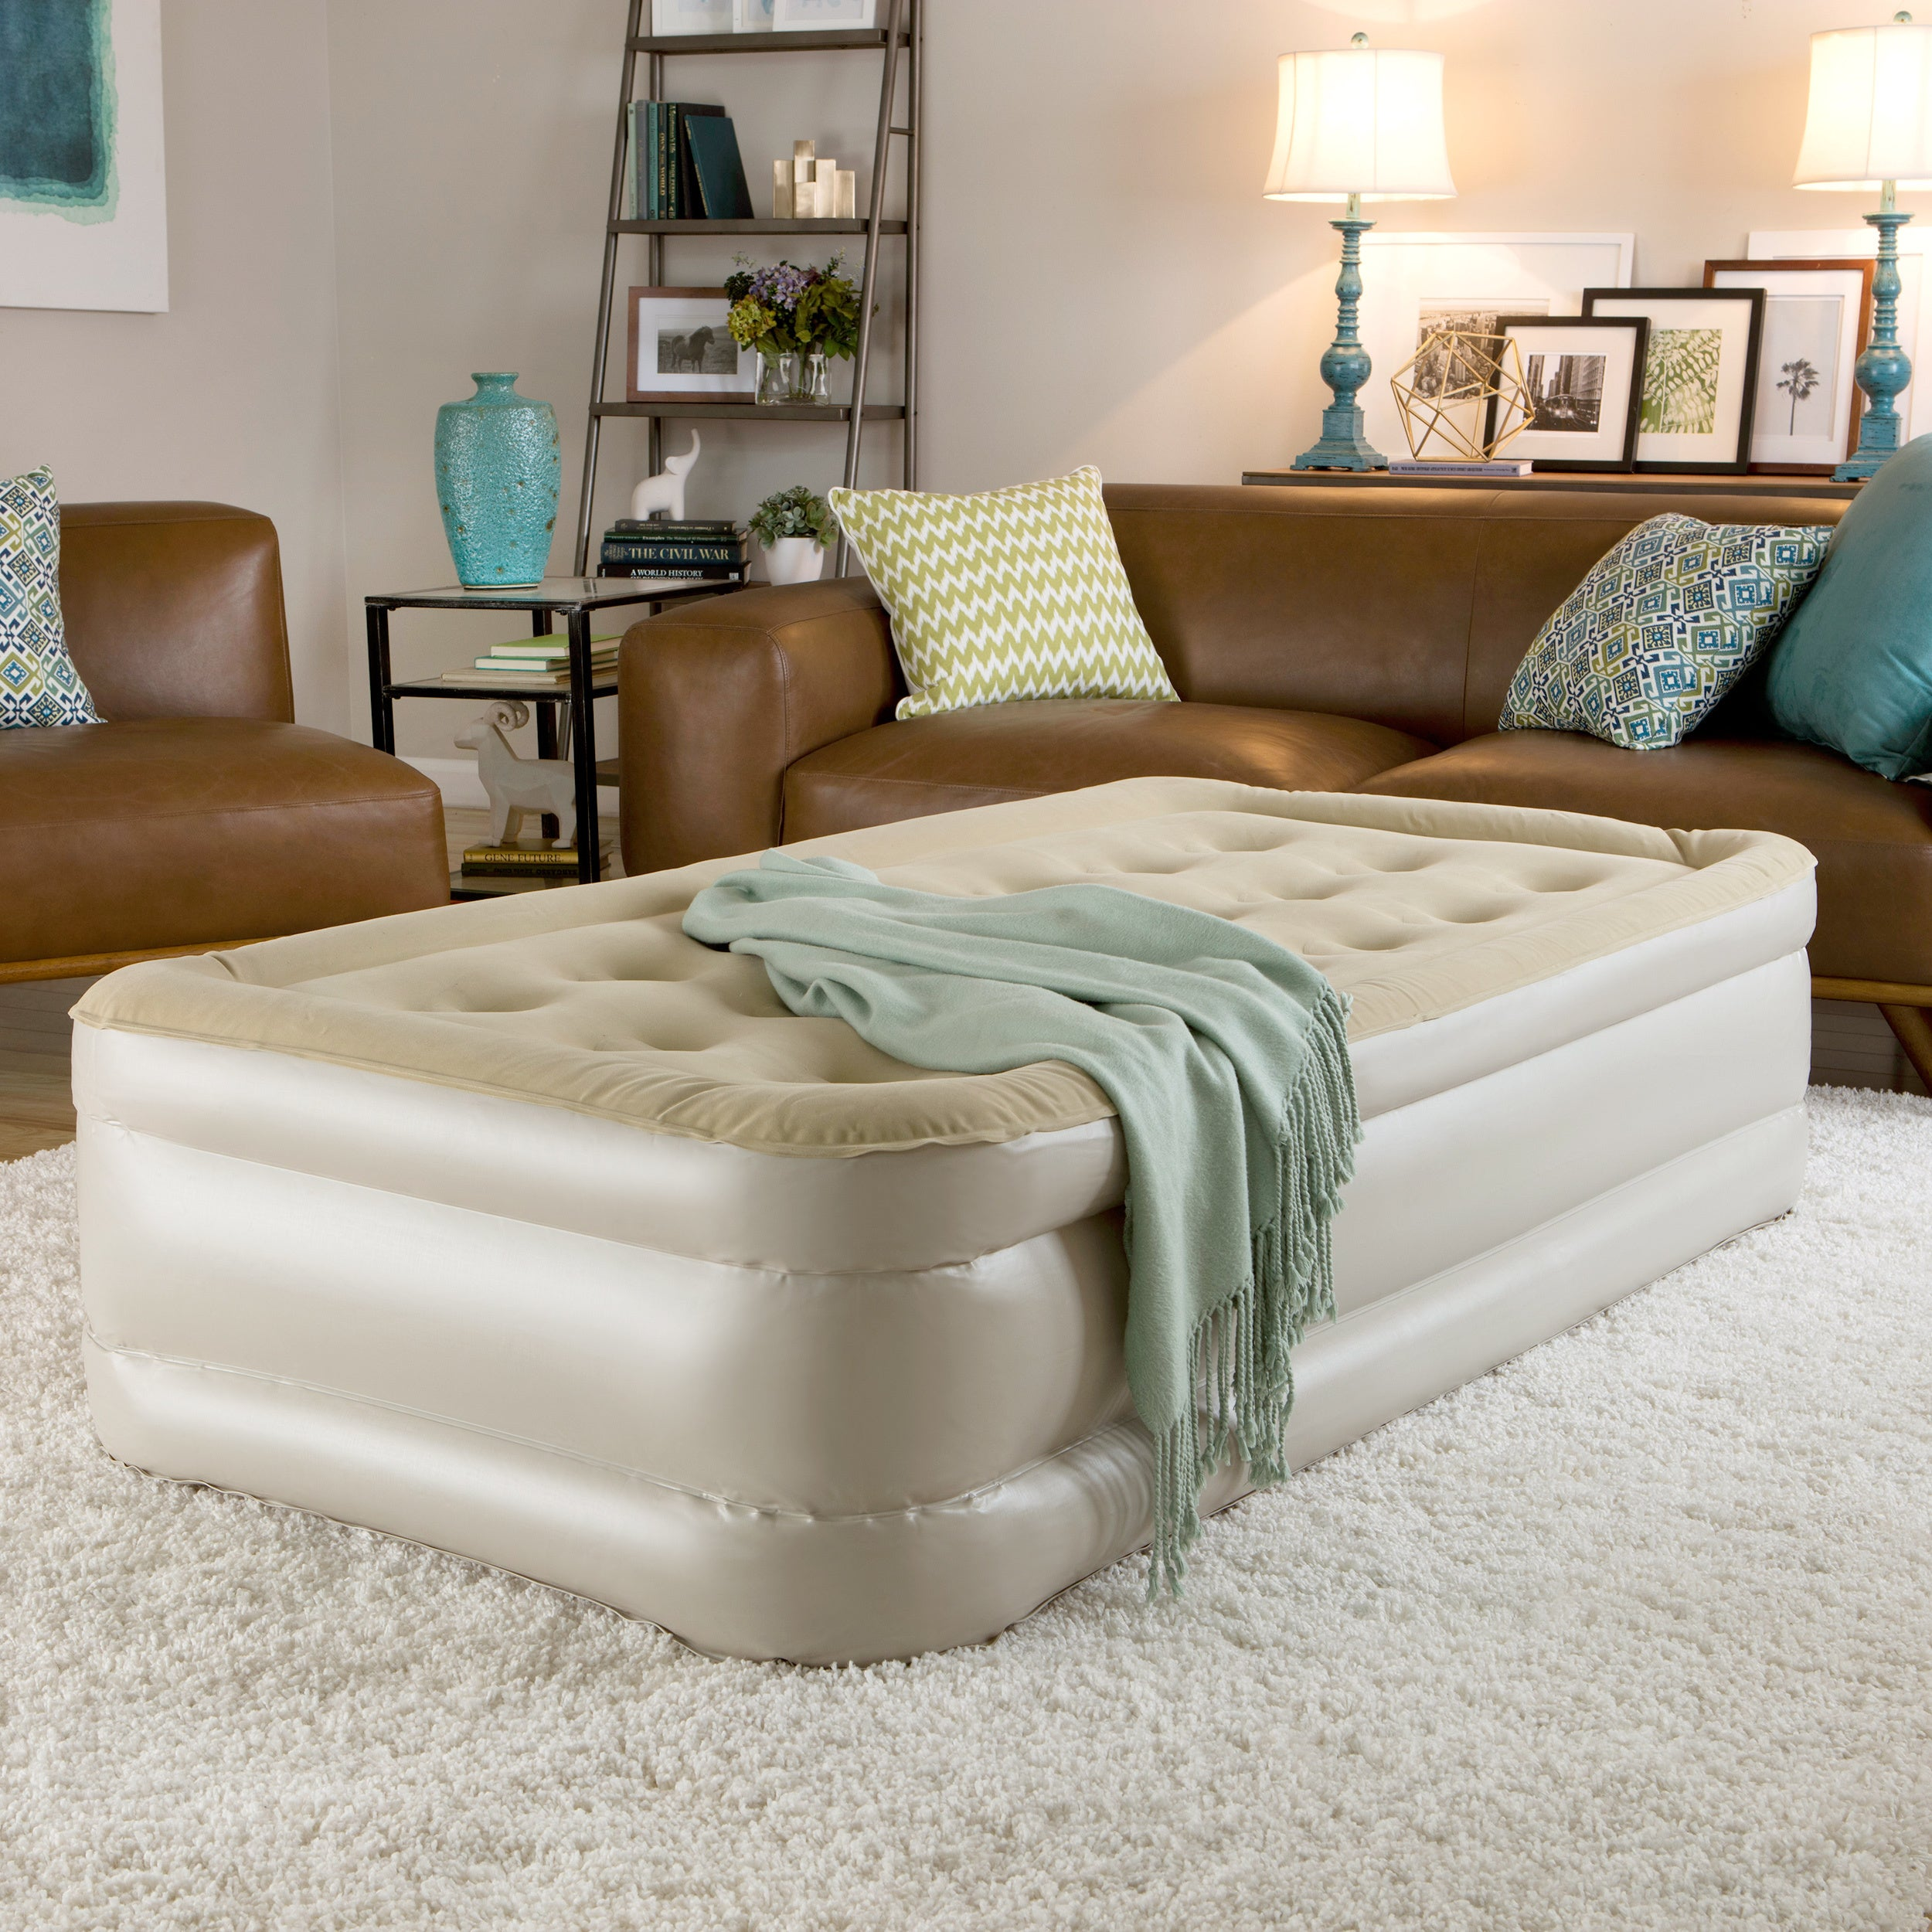 mattress extraordinaire simmons and sale sizes in support with walmart air iflex com ip pump built beautyrest multiple bed raised